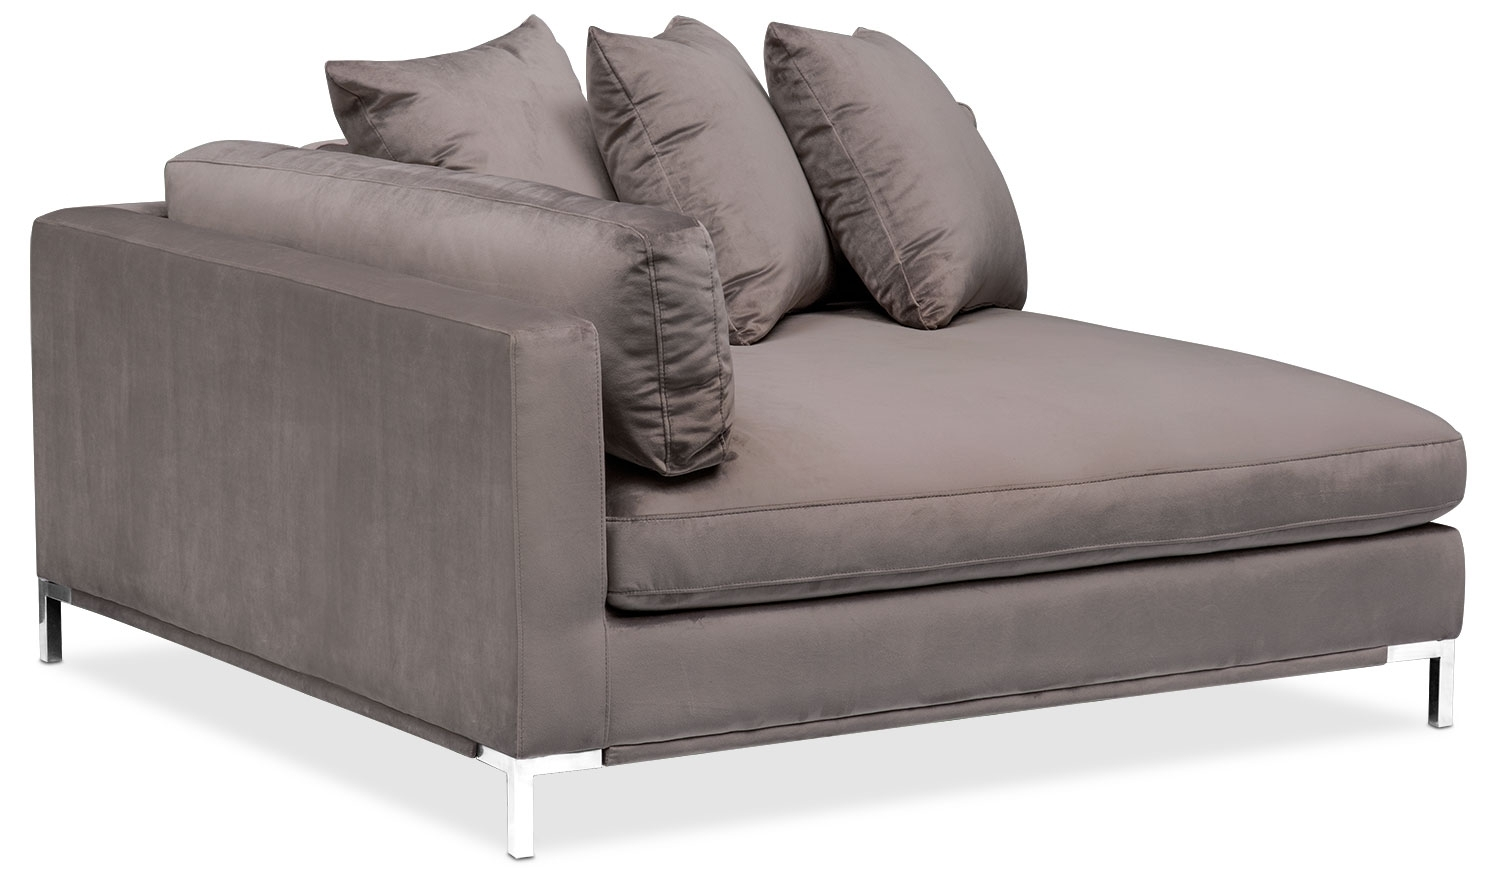 Moda 3-Piece Sectional With Left-Facing Chaise - Oyster | Value City throughout Nico Grey Sectionals With Left Facing Storage Chaise (Image 17 of 30)